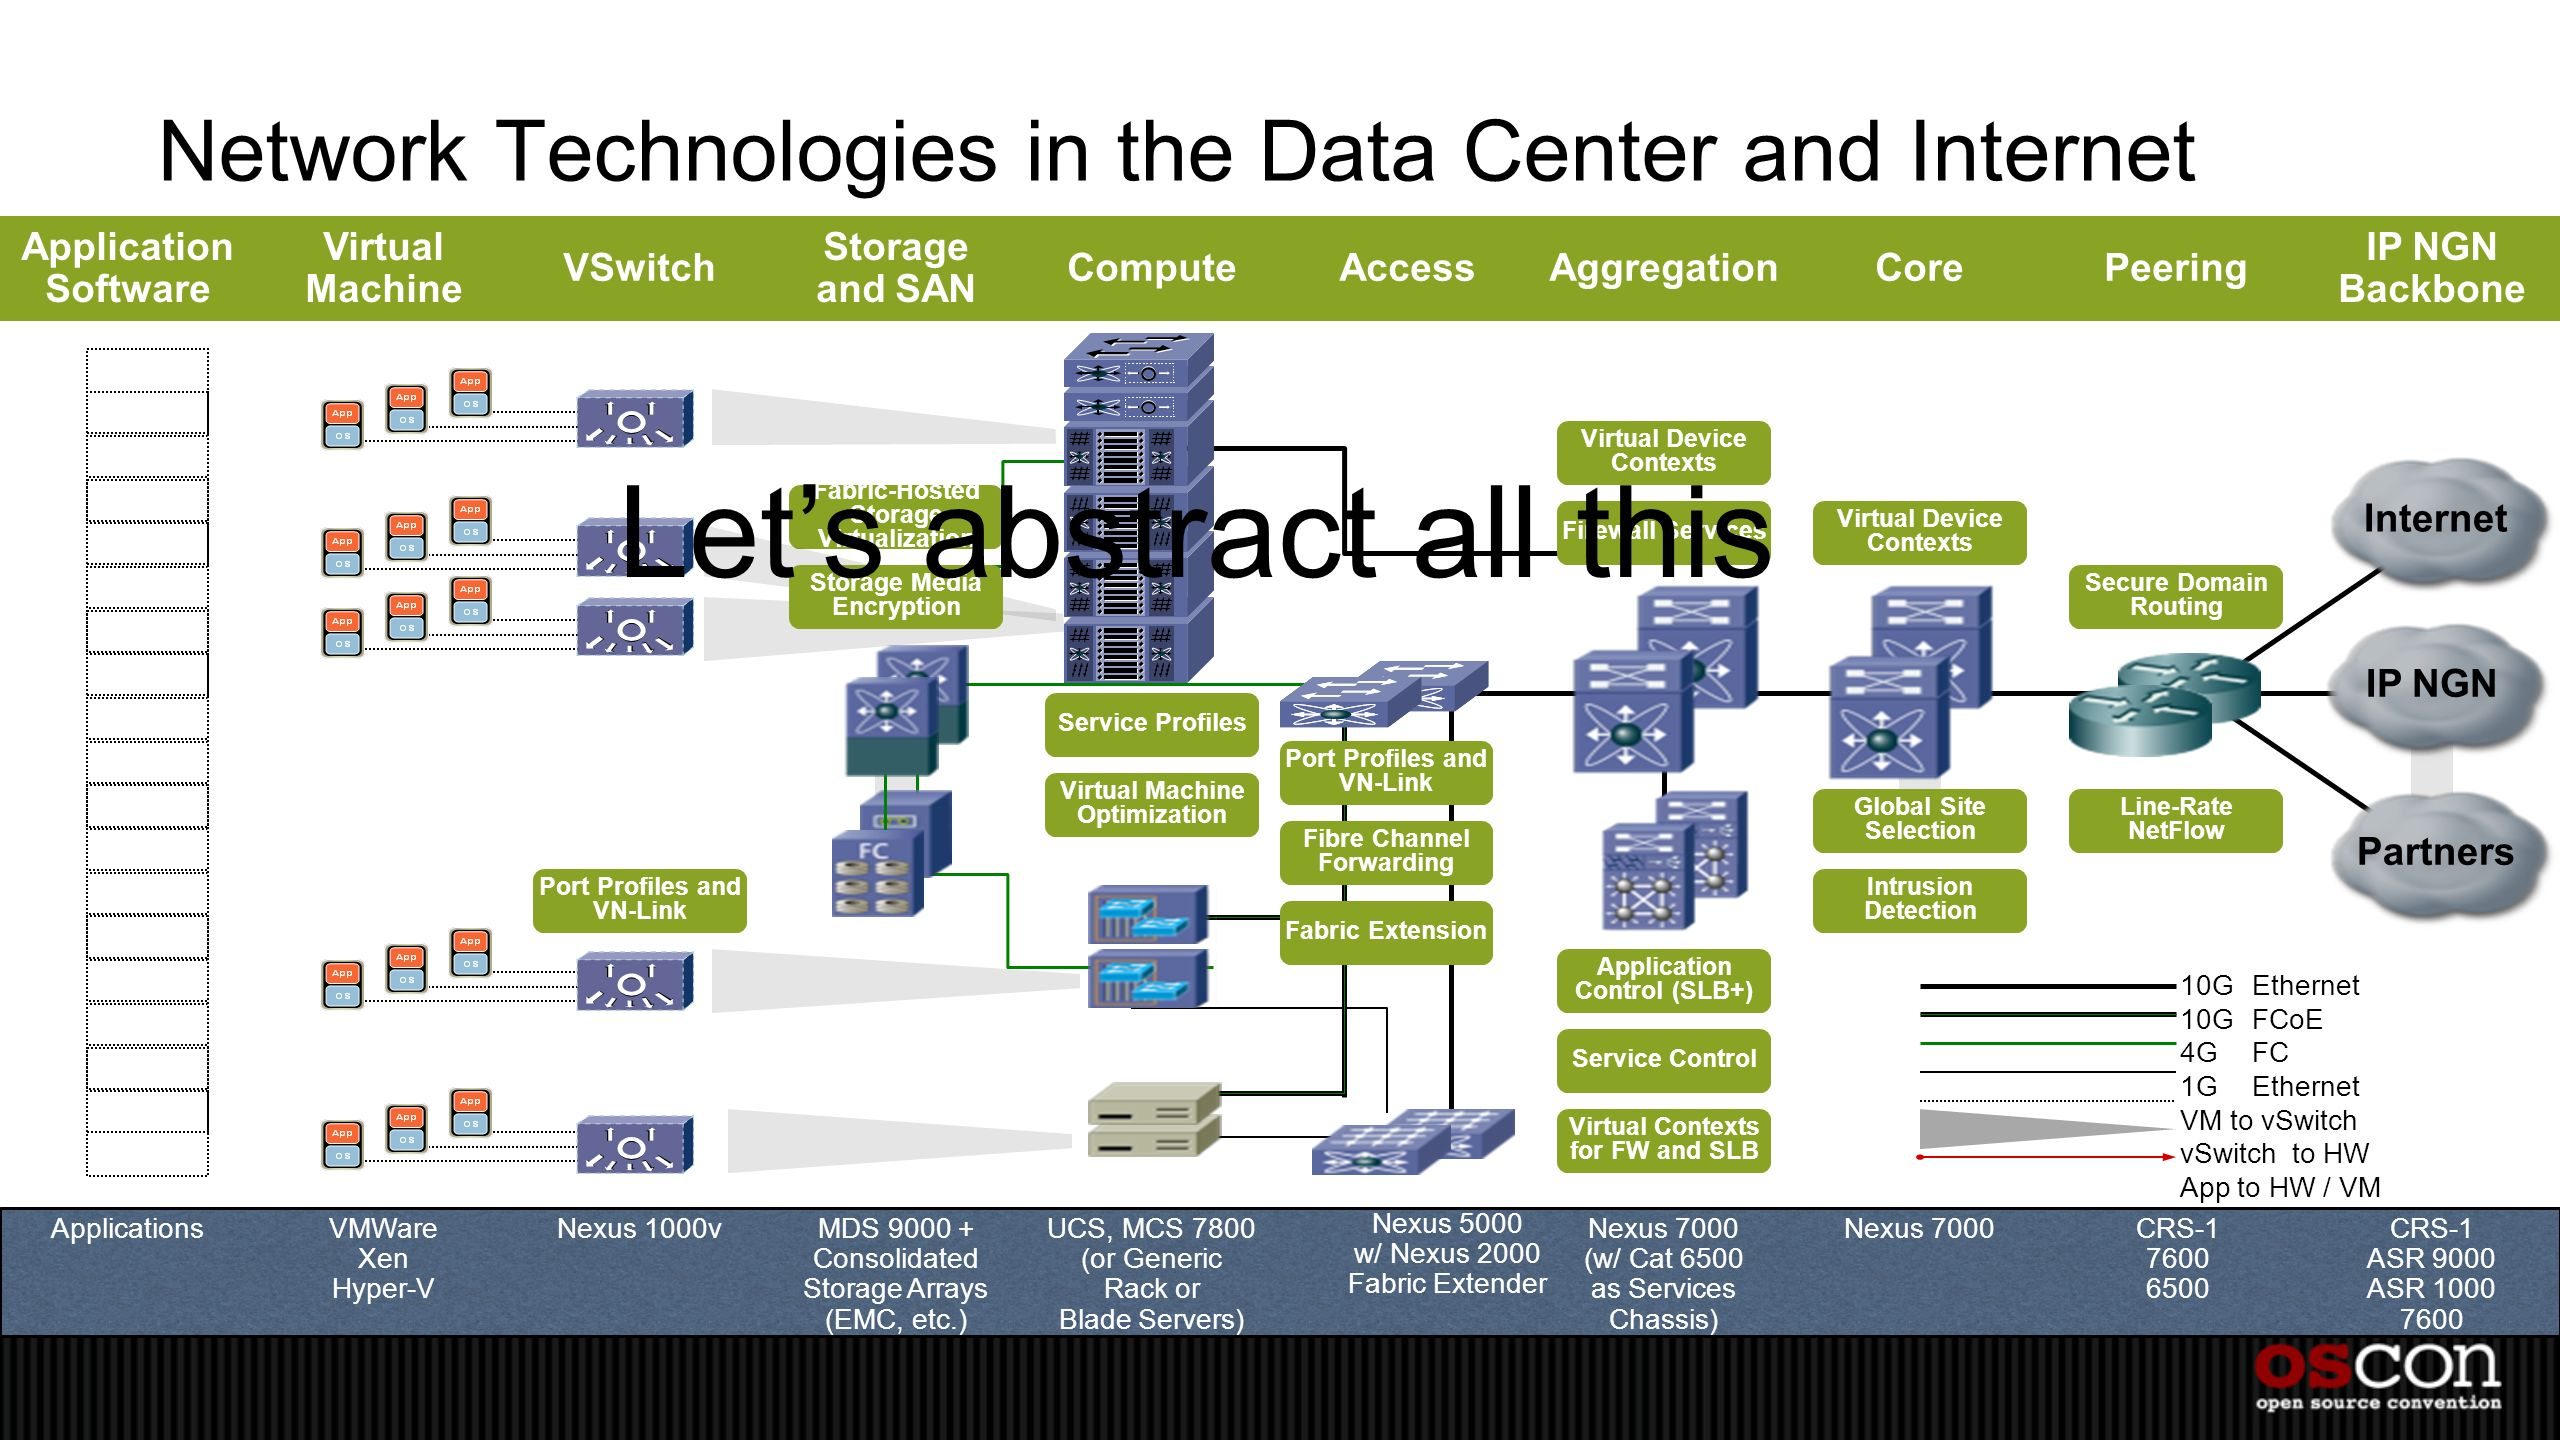 Network Technologies in the Data Center and Internet